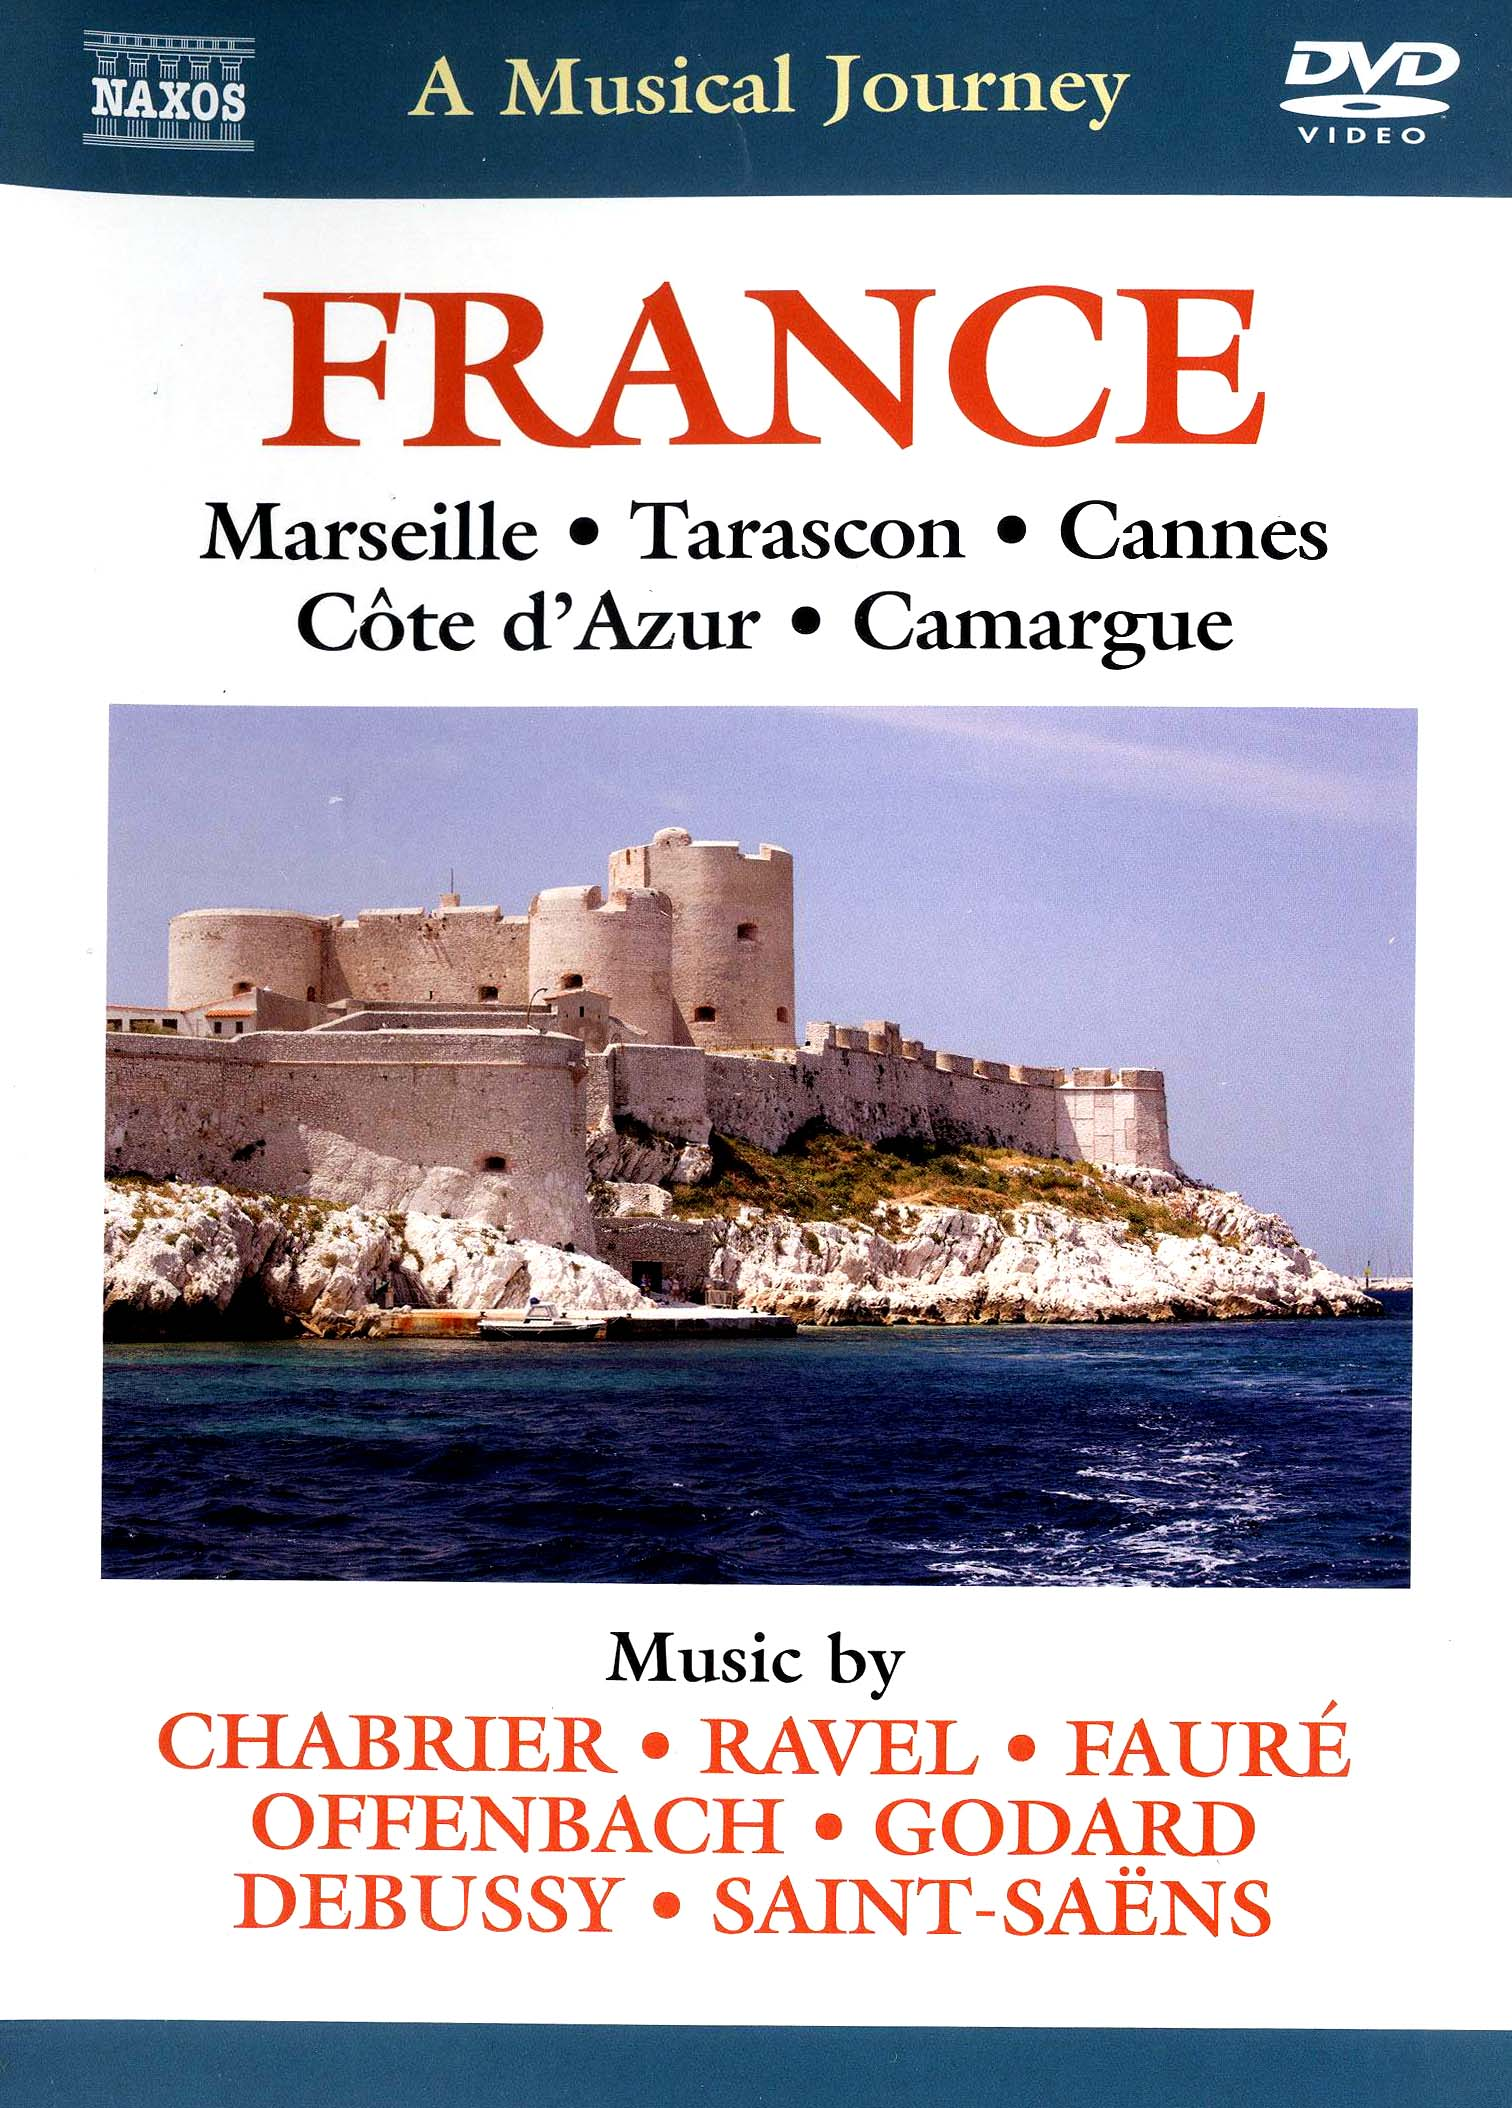 A Musical Journey: France - Marseille/Tarascon/Cannes/Côte d'Azur/Camargue